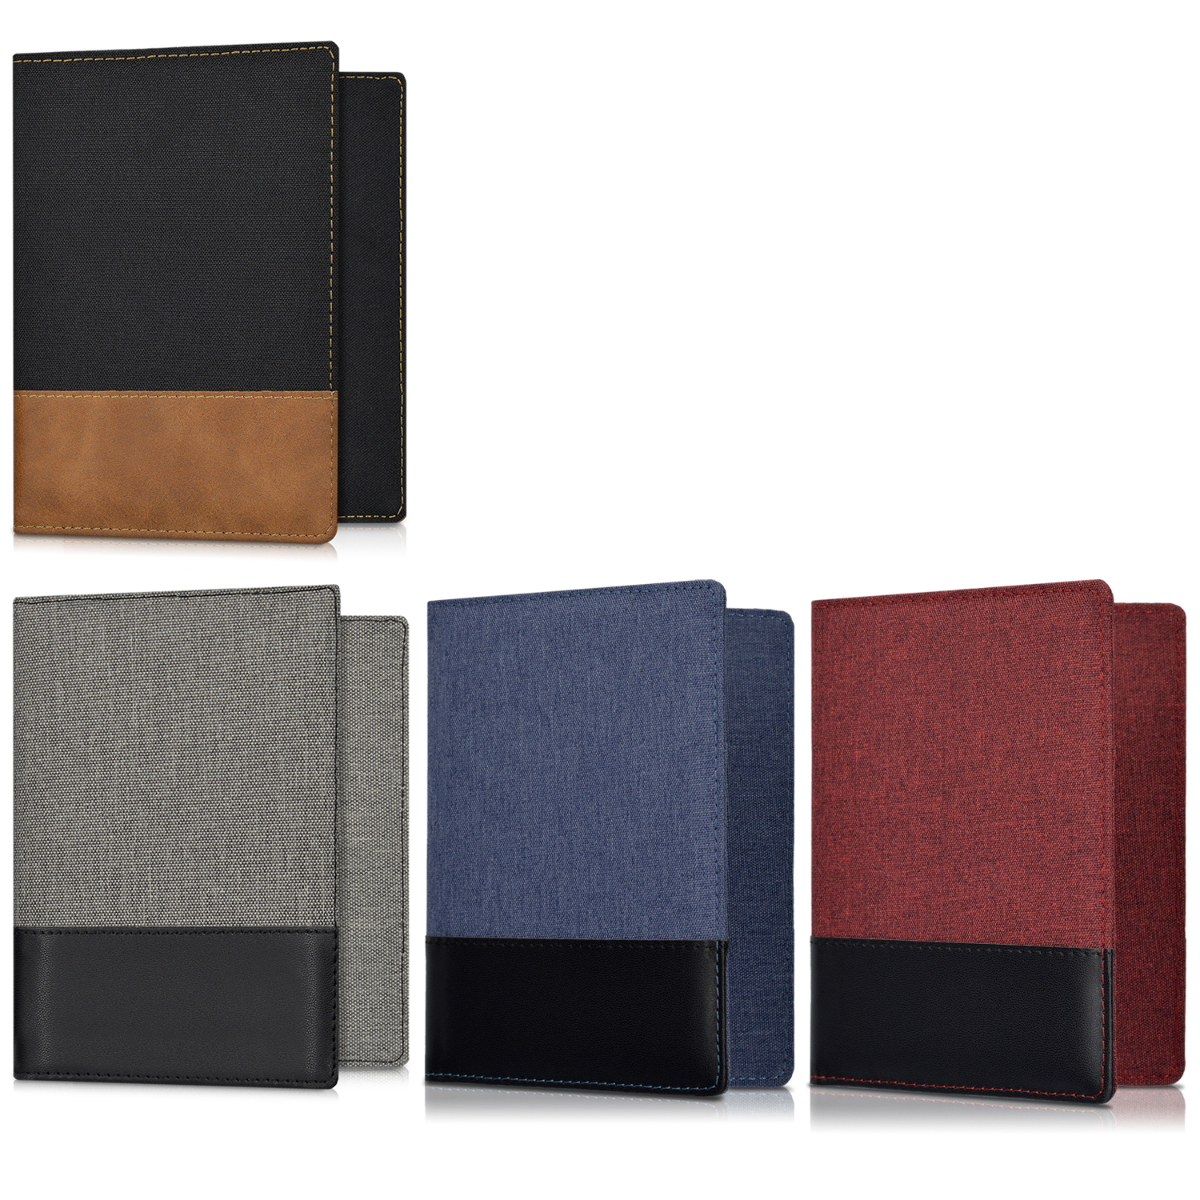 3341a28917e3 Details about PU Leather Canvas Passport Holder Travel Wallet in